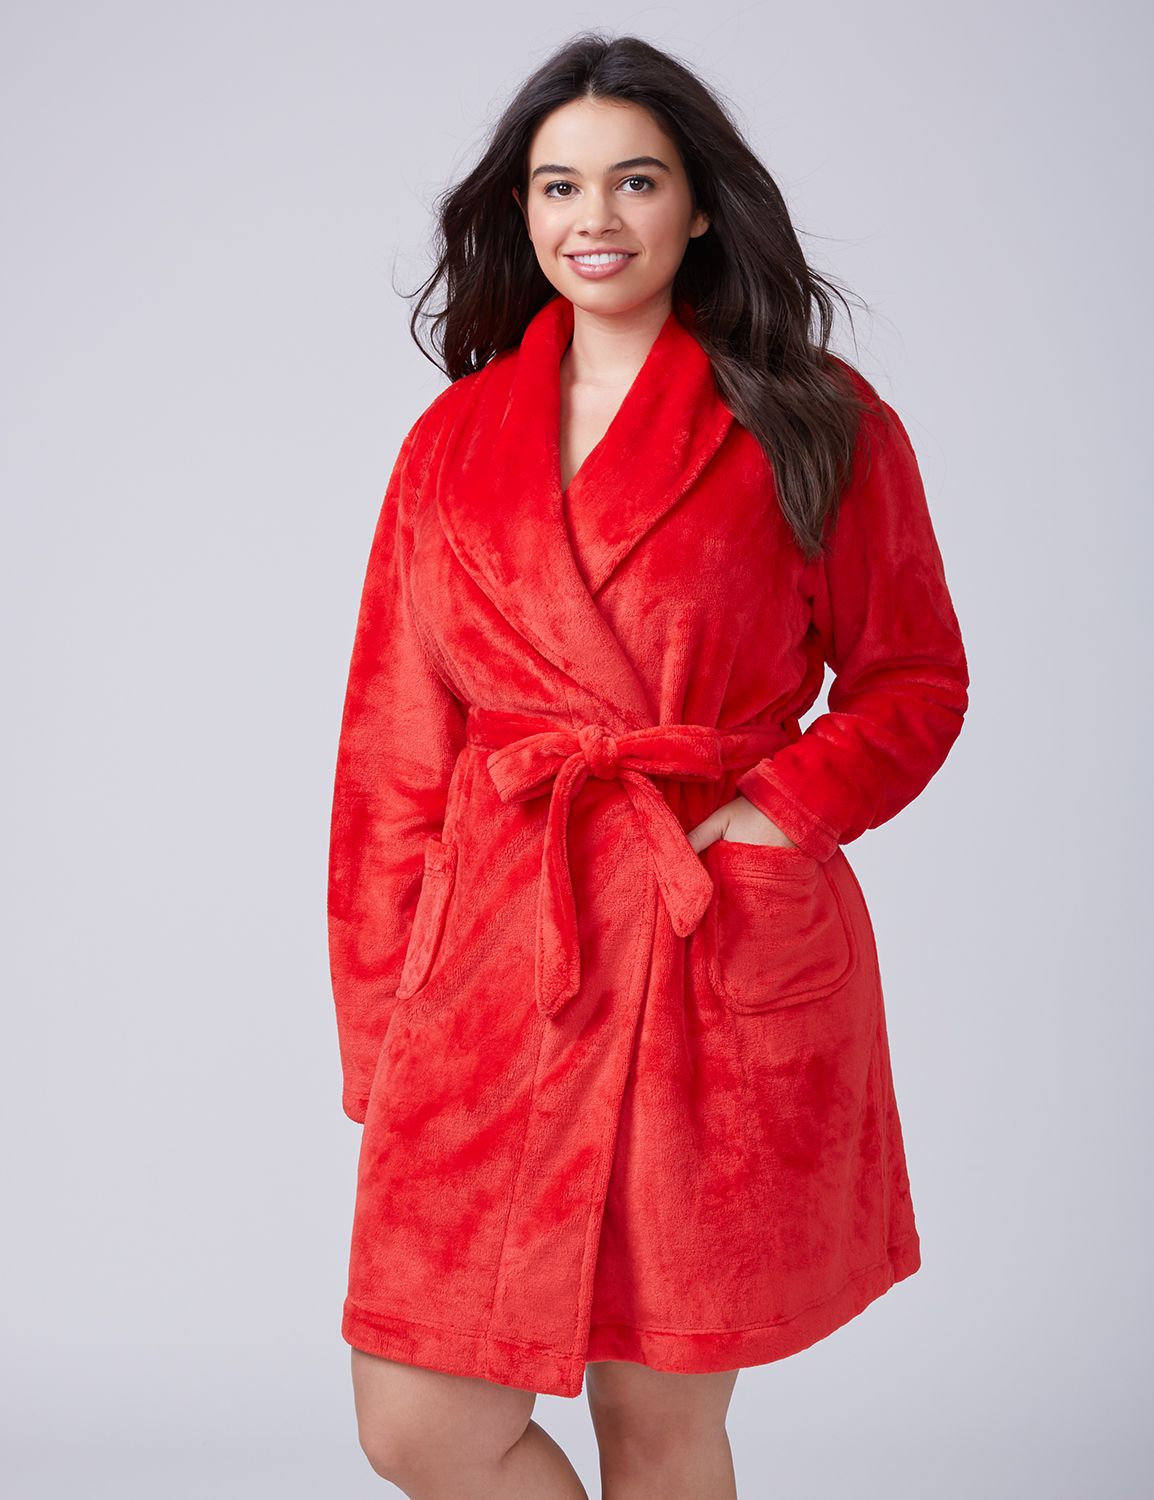 Lane Bryant Womens Plush Robe 22/24 Chinese Red